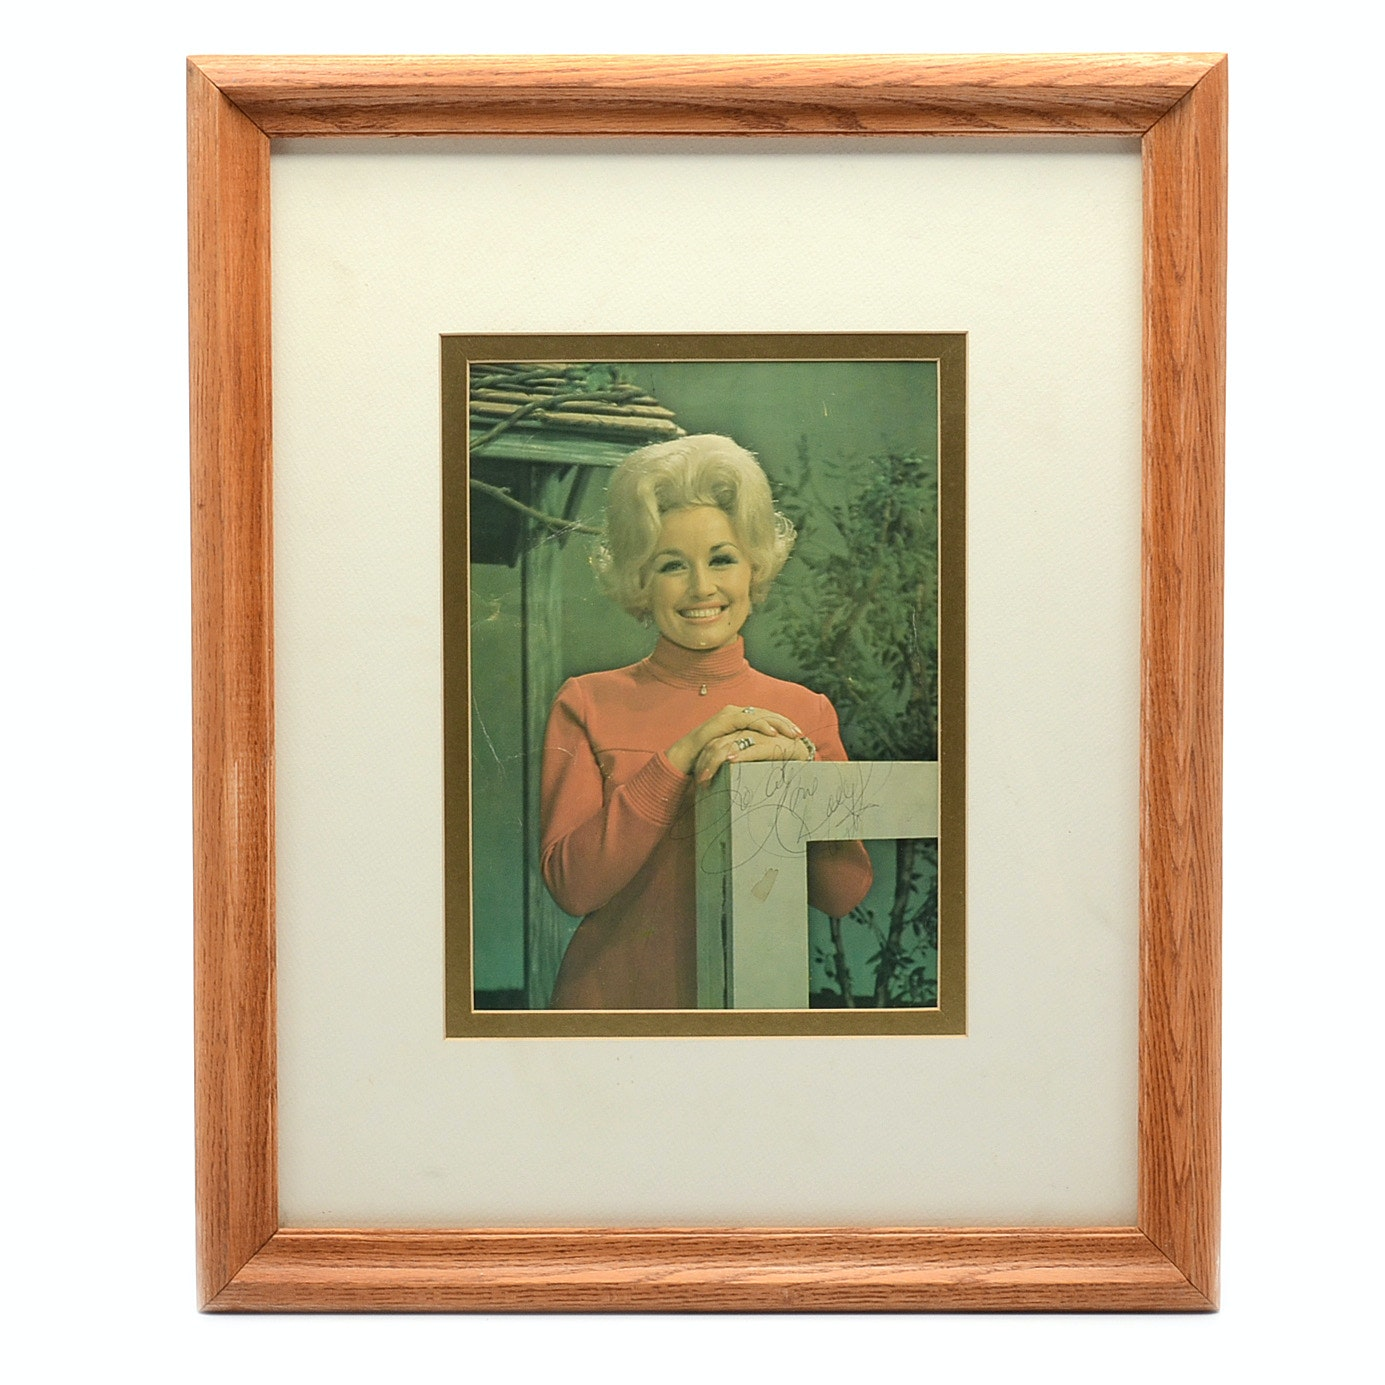 Autographed Print after Photograph of Dolly Parton